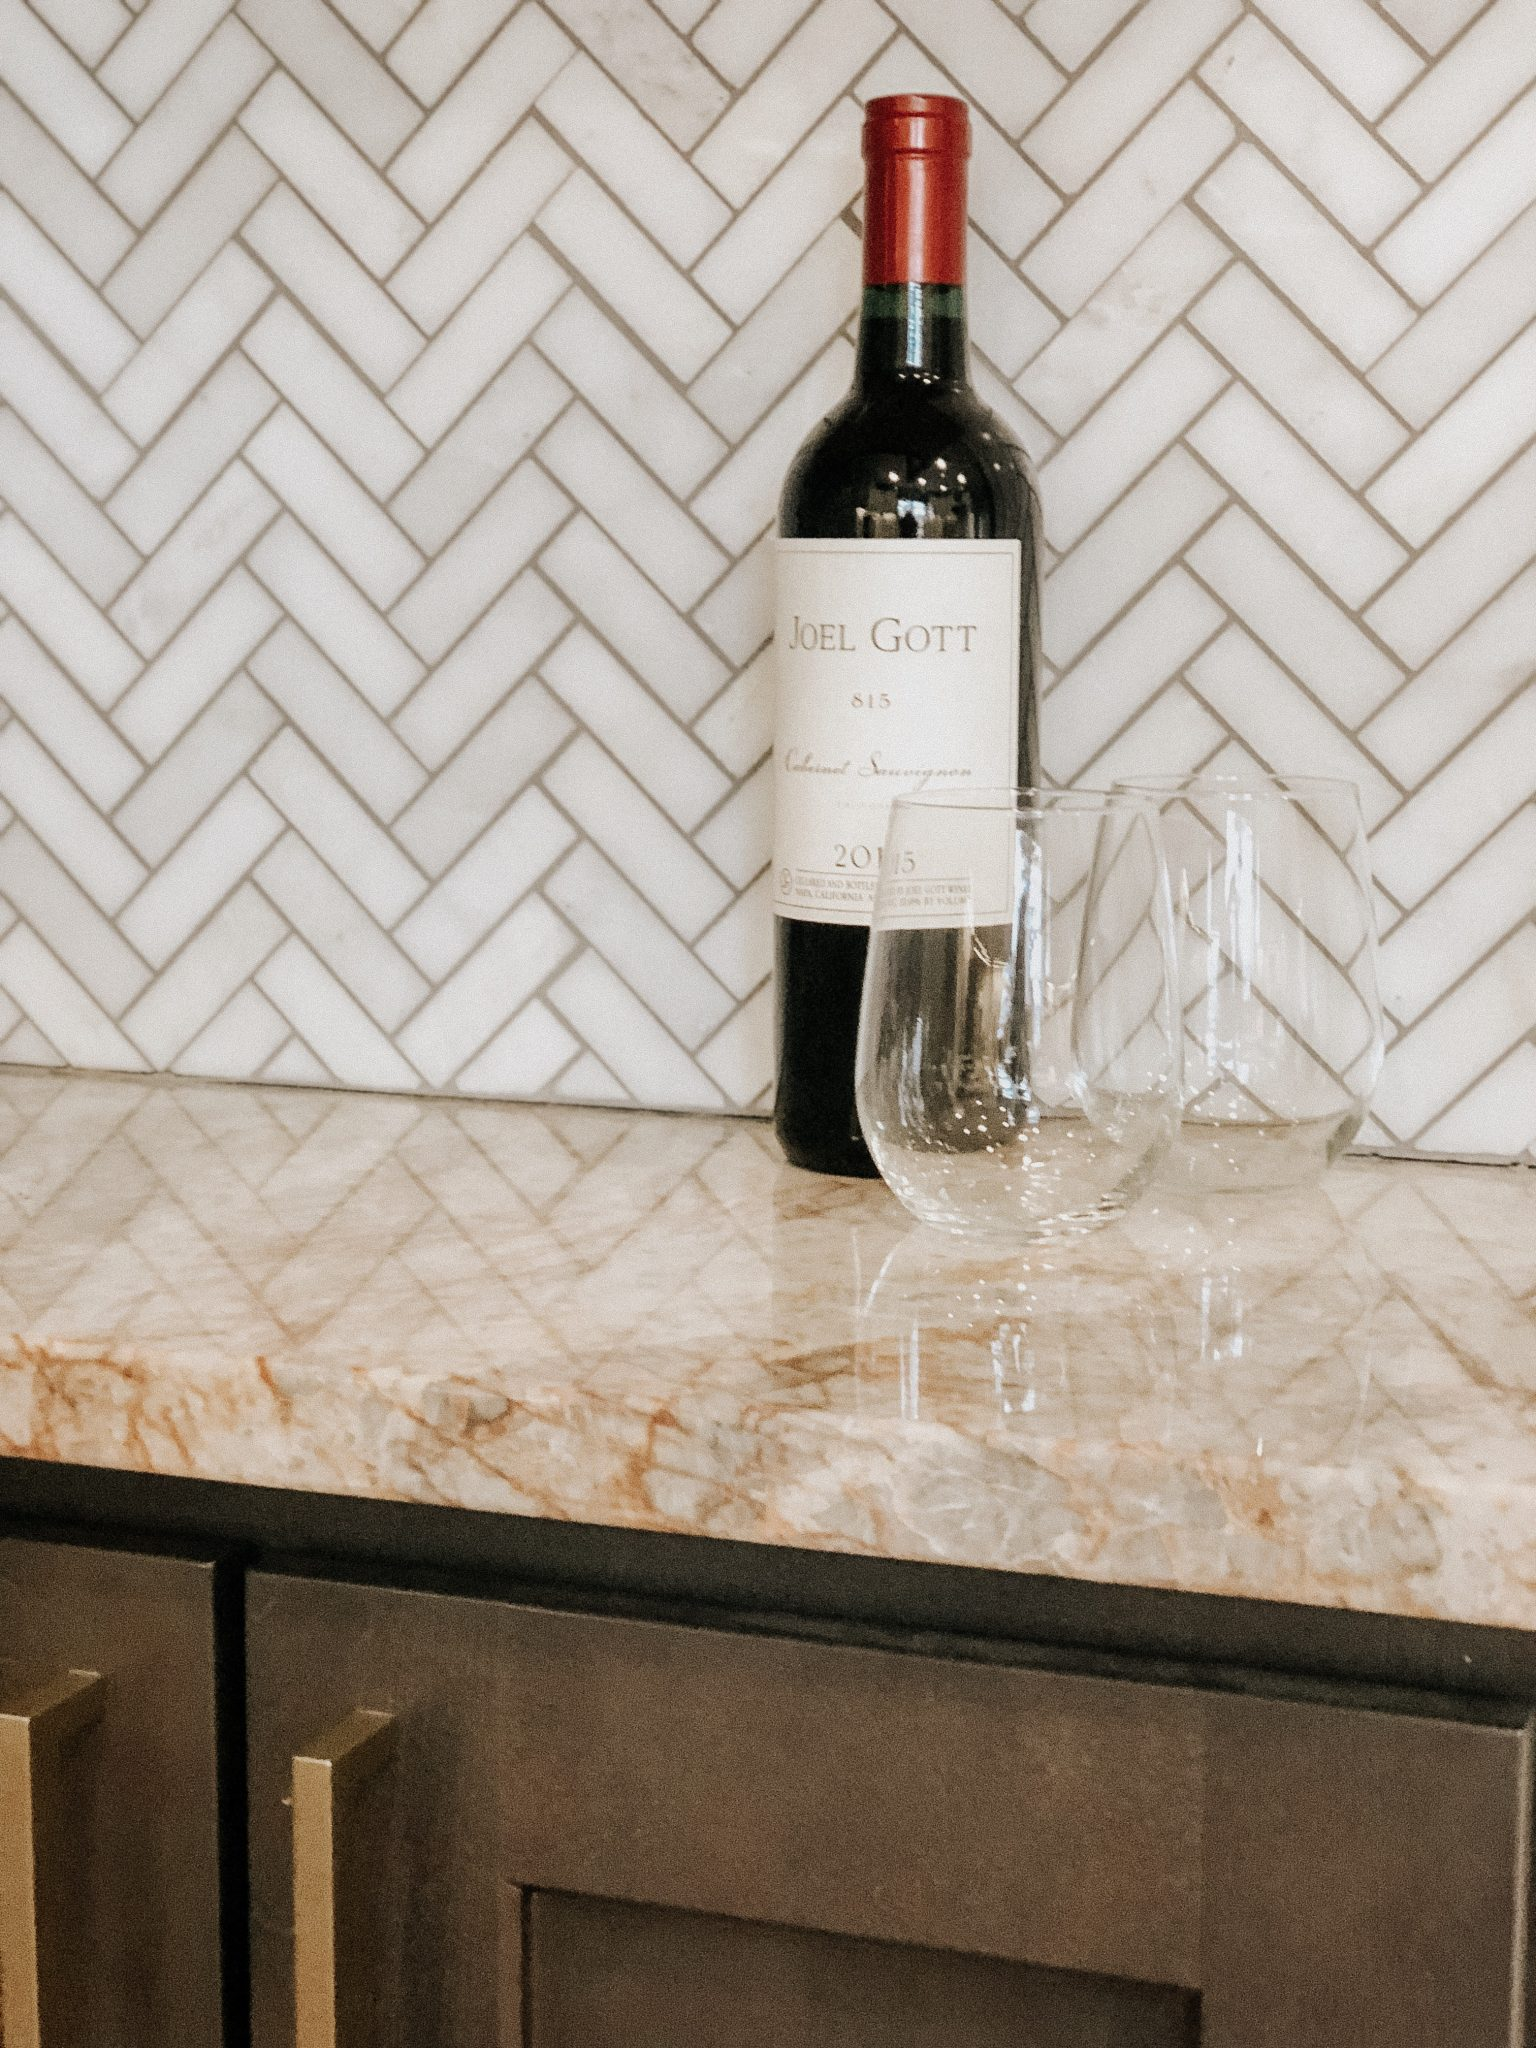 Simple Home Bar Setup | Daily Splendor Life and Style Blog | stemless, wine glass, home bar, hostess, hosting #homebar #wine #entertaining